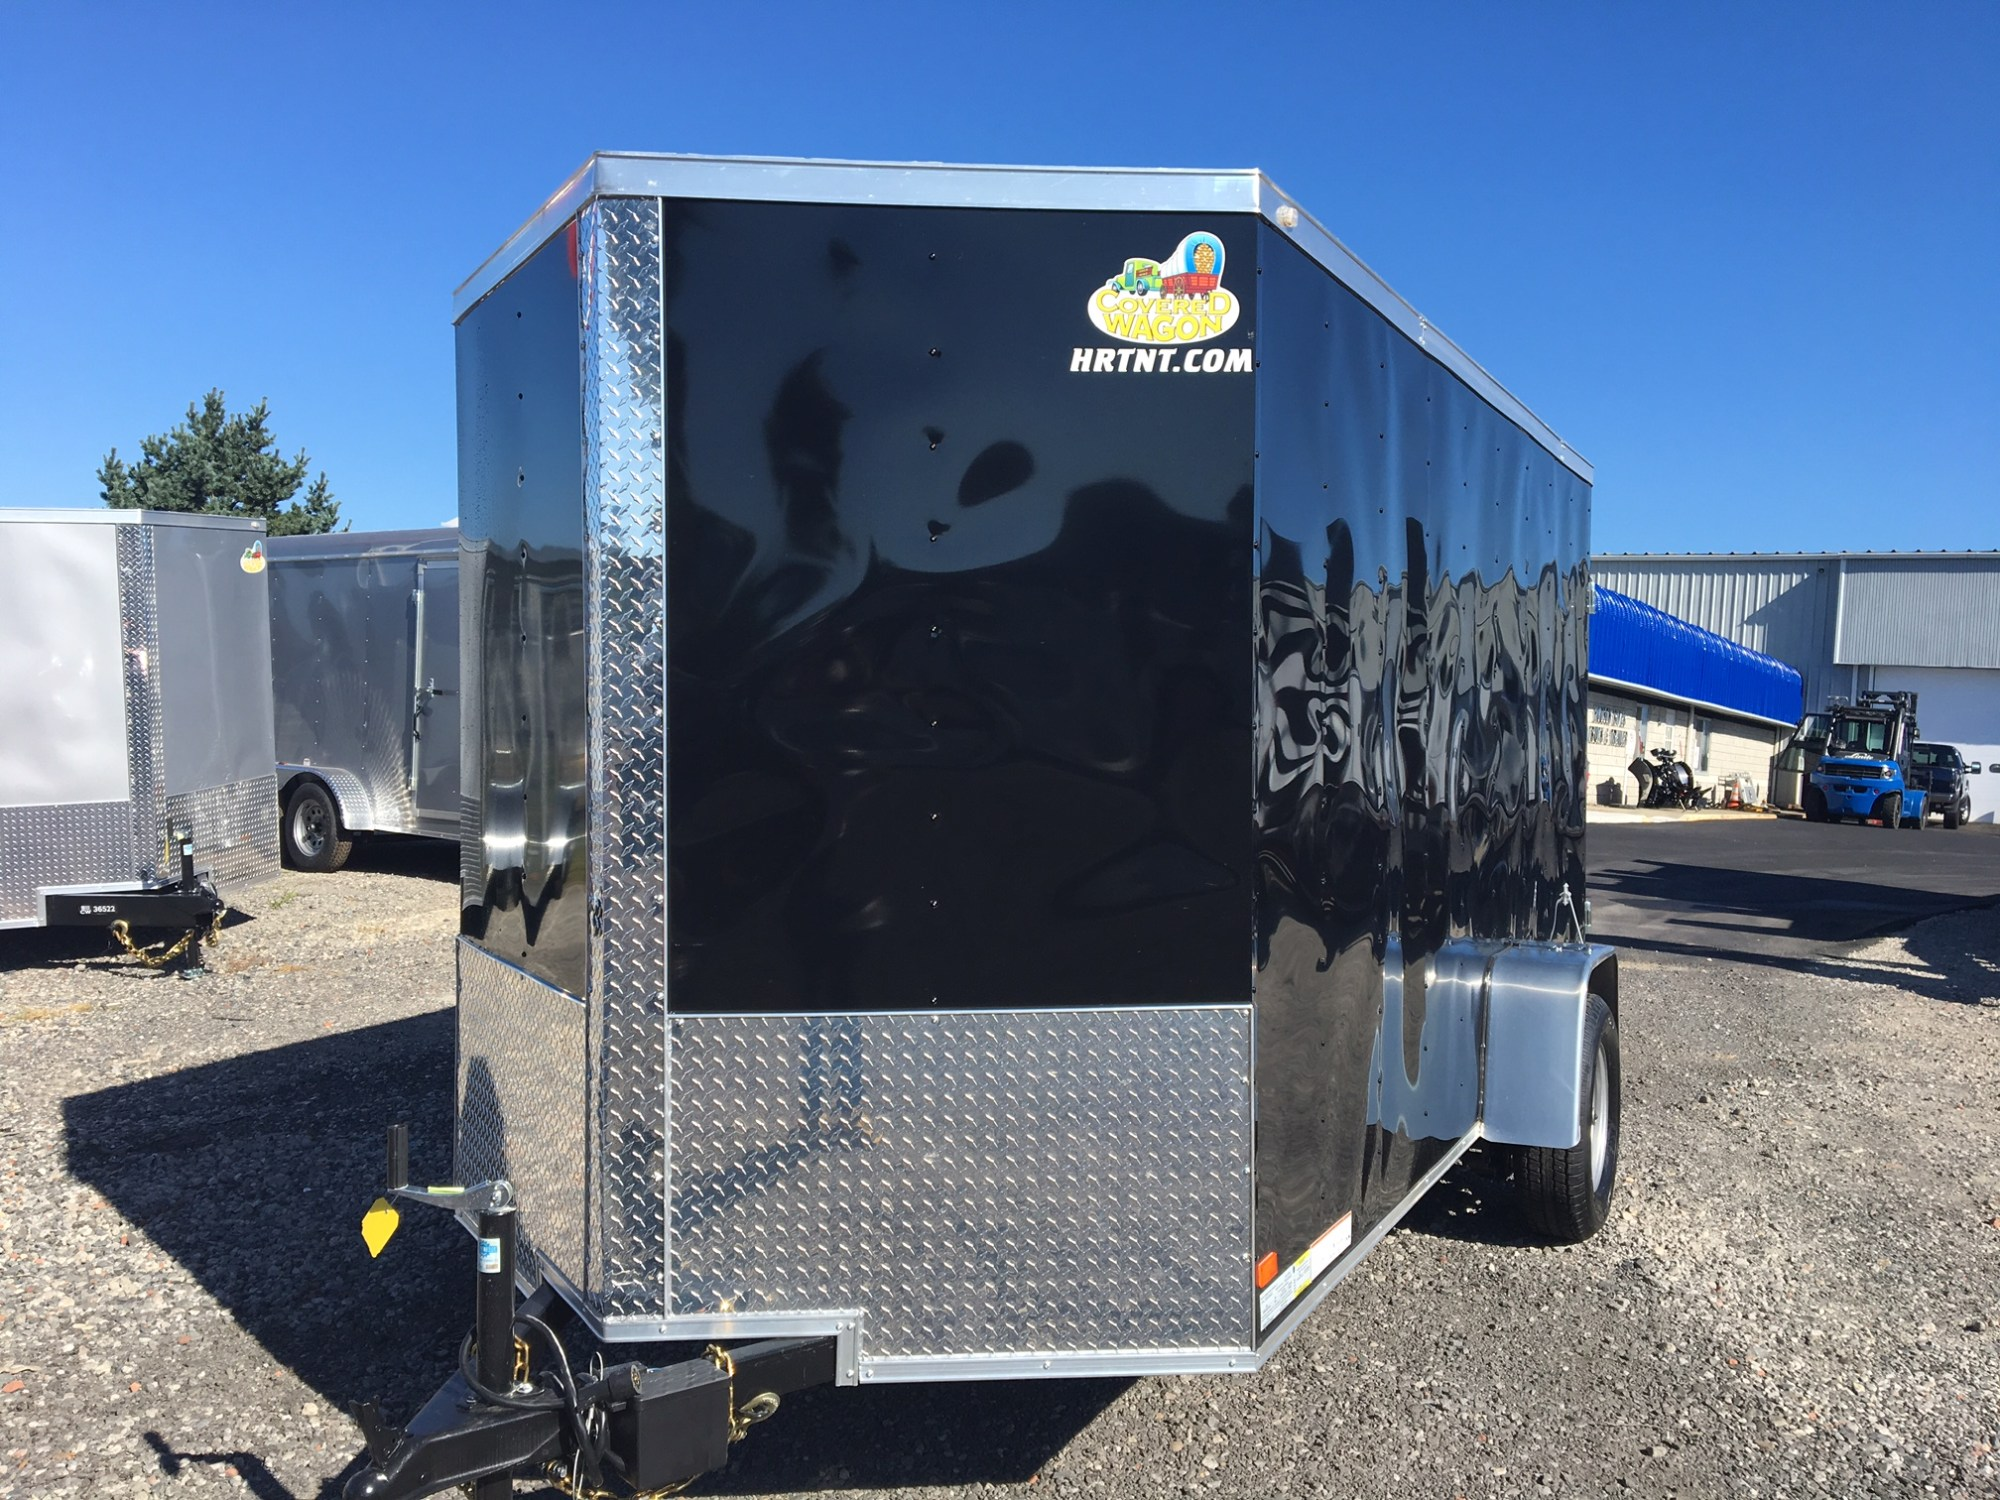 hight resolution of trailers hudson river truck and trailer enclosed cargo trailers and utility flatbed trailers for sale in ny truck bodies van interiors poughkeepsie